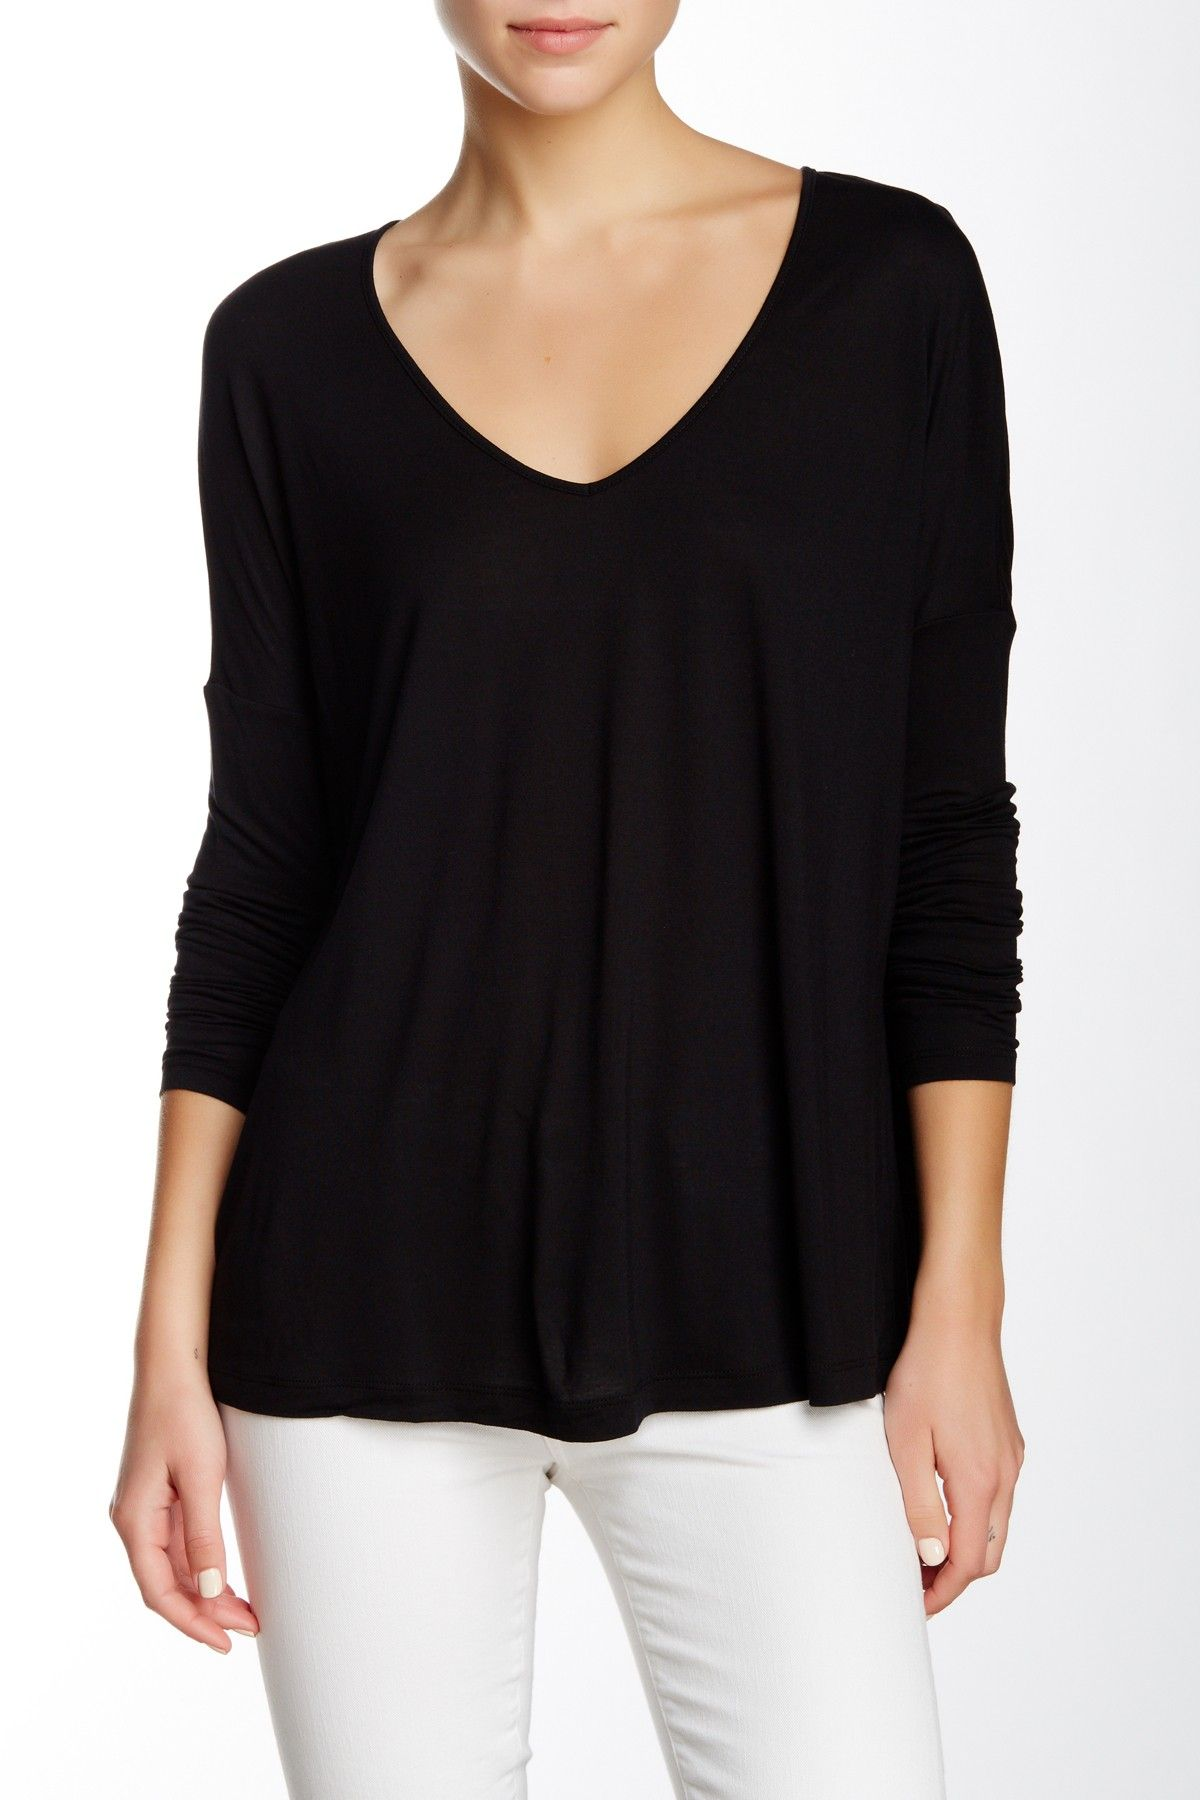 V-Neck Oversized Long Sleeve Tee by Haute Hippie on @nordstrom_rack